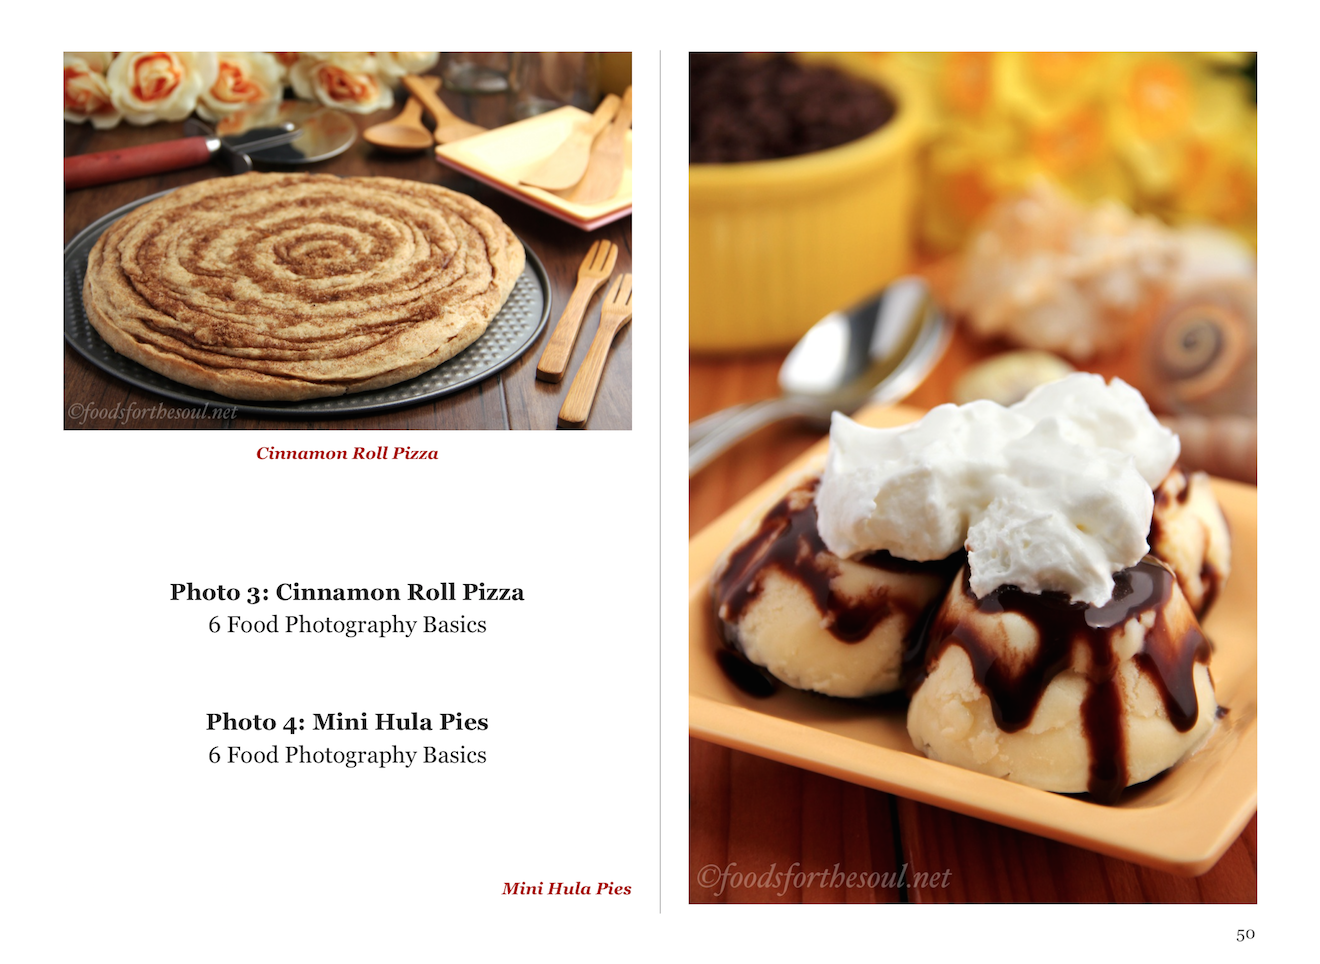 The Basics of Food Photography: Compositional Elements - Practice Quizzes Page